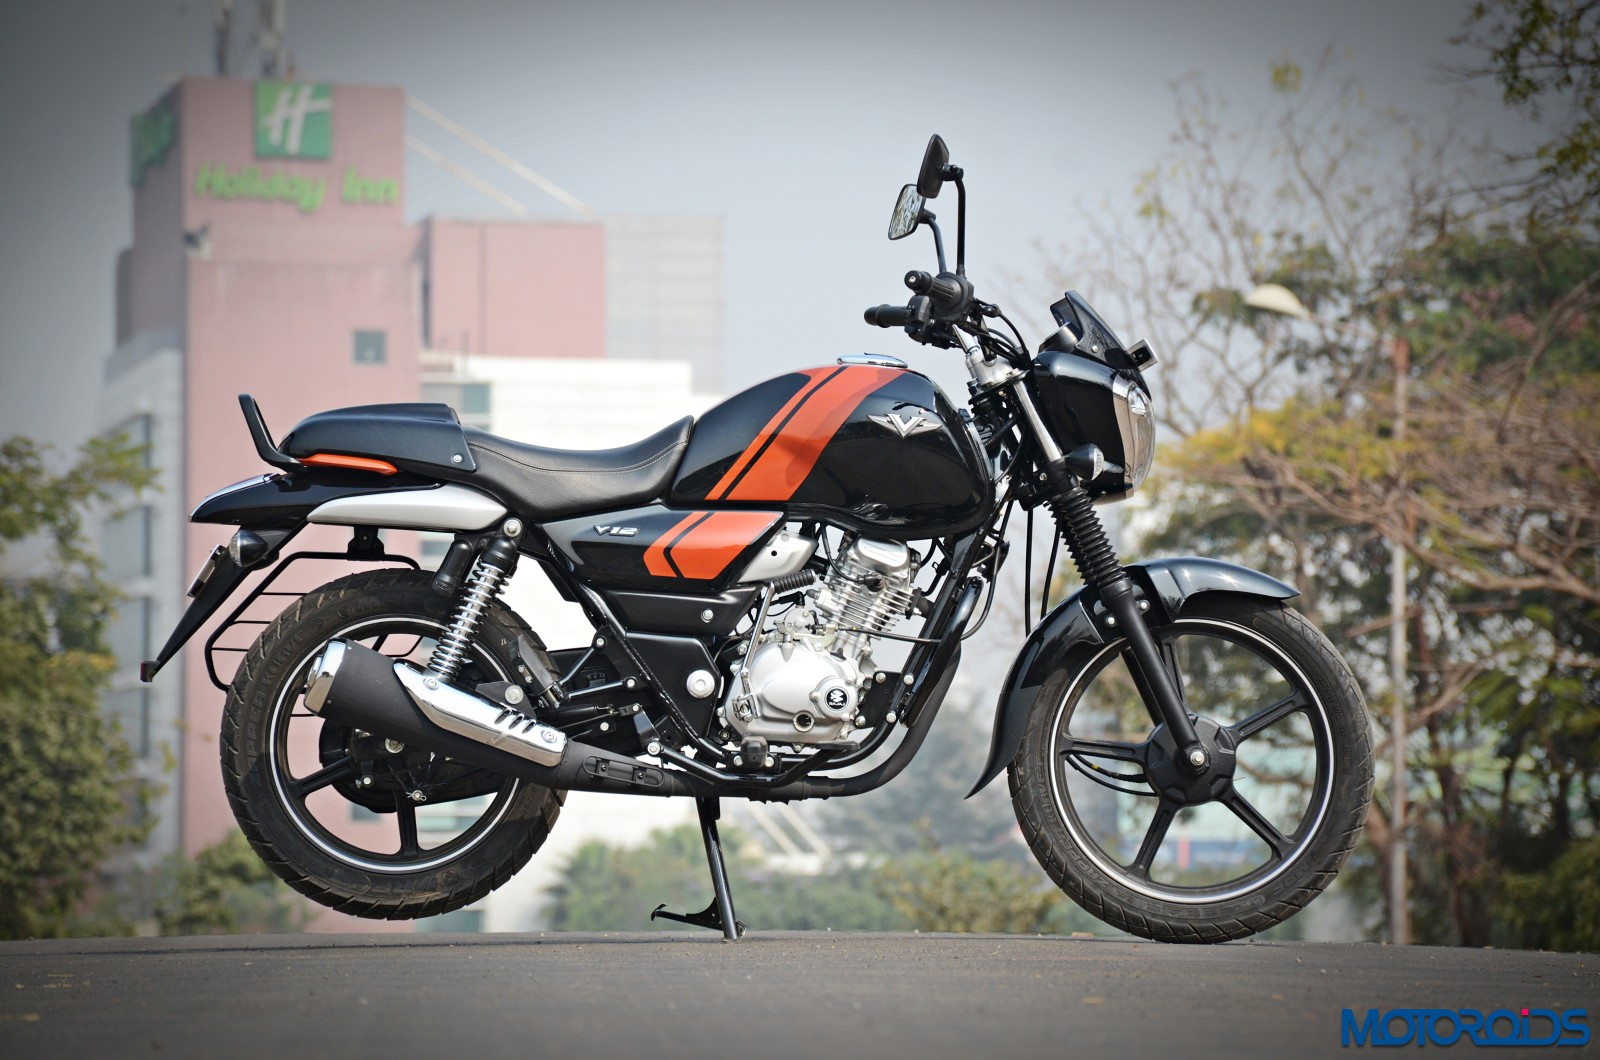 Bajaj-V12-Review-Still-Shots-1